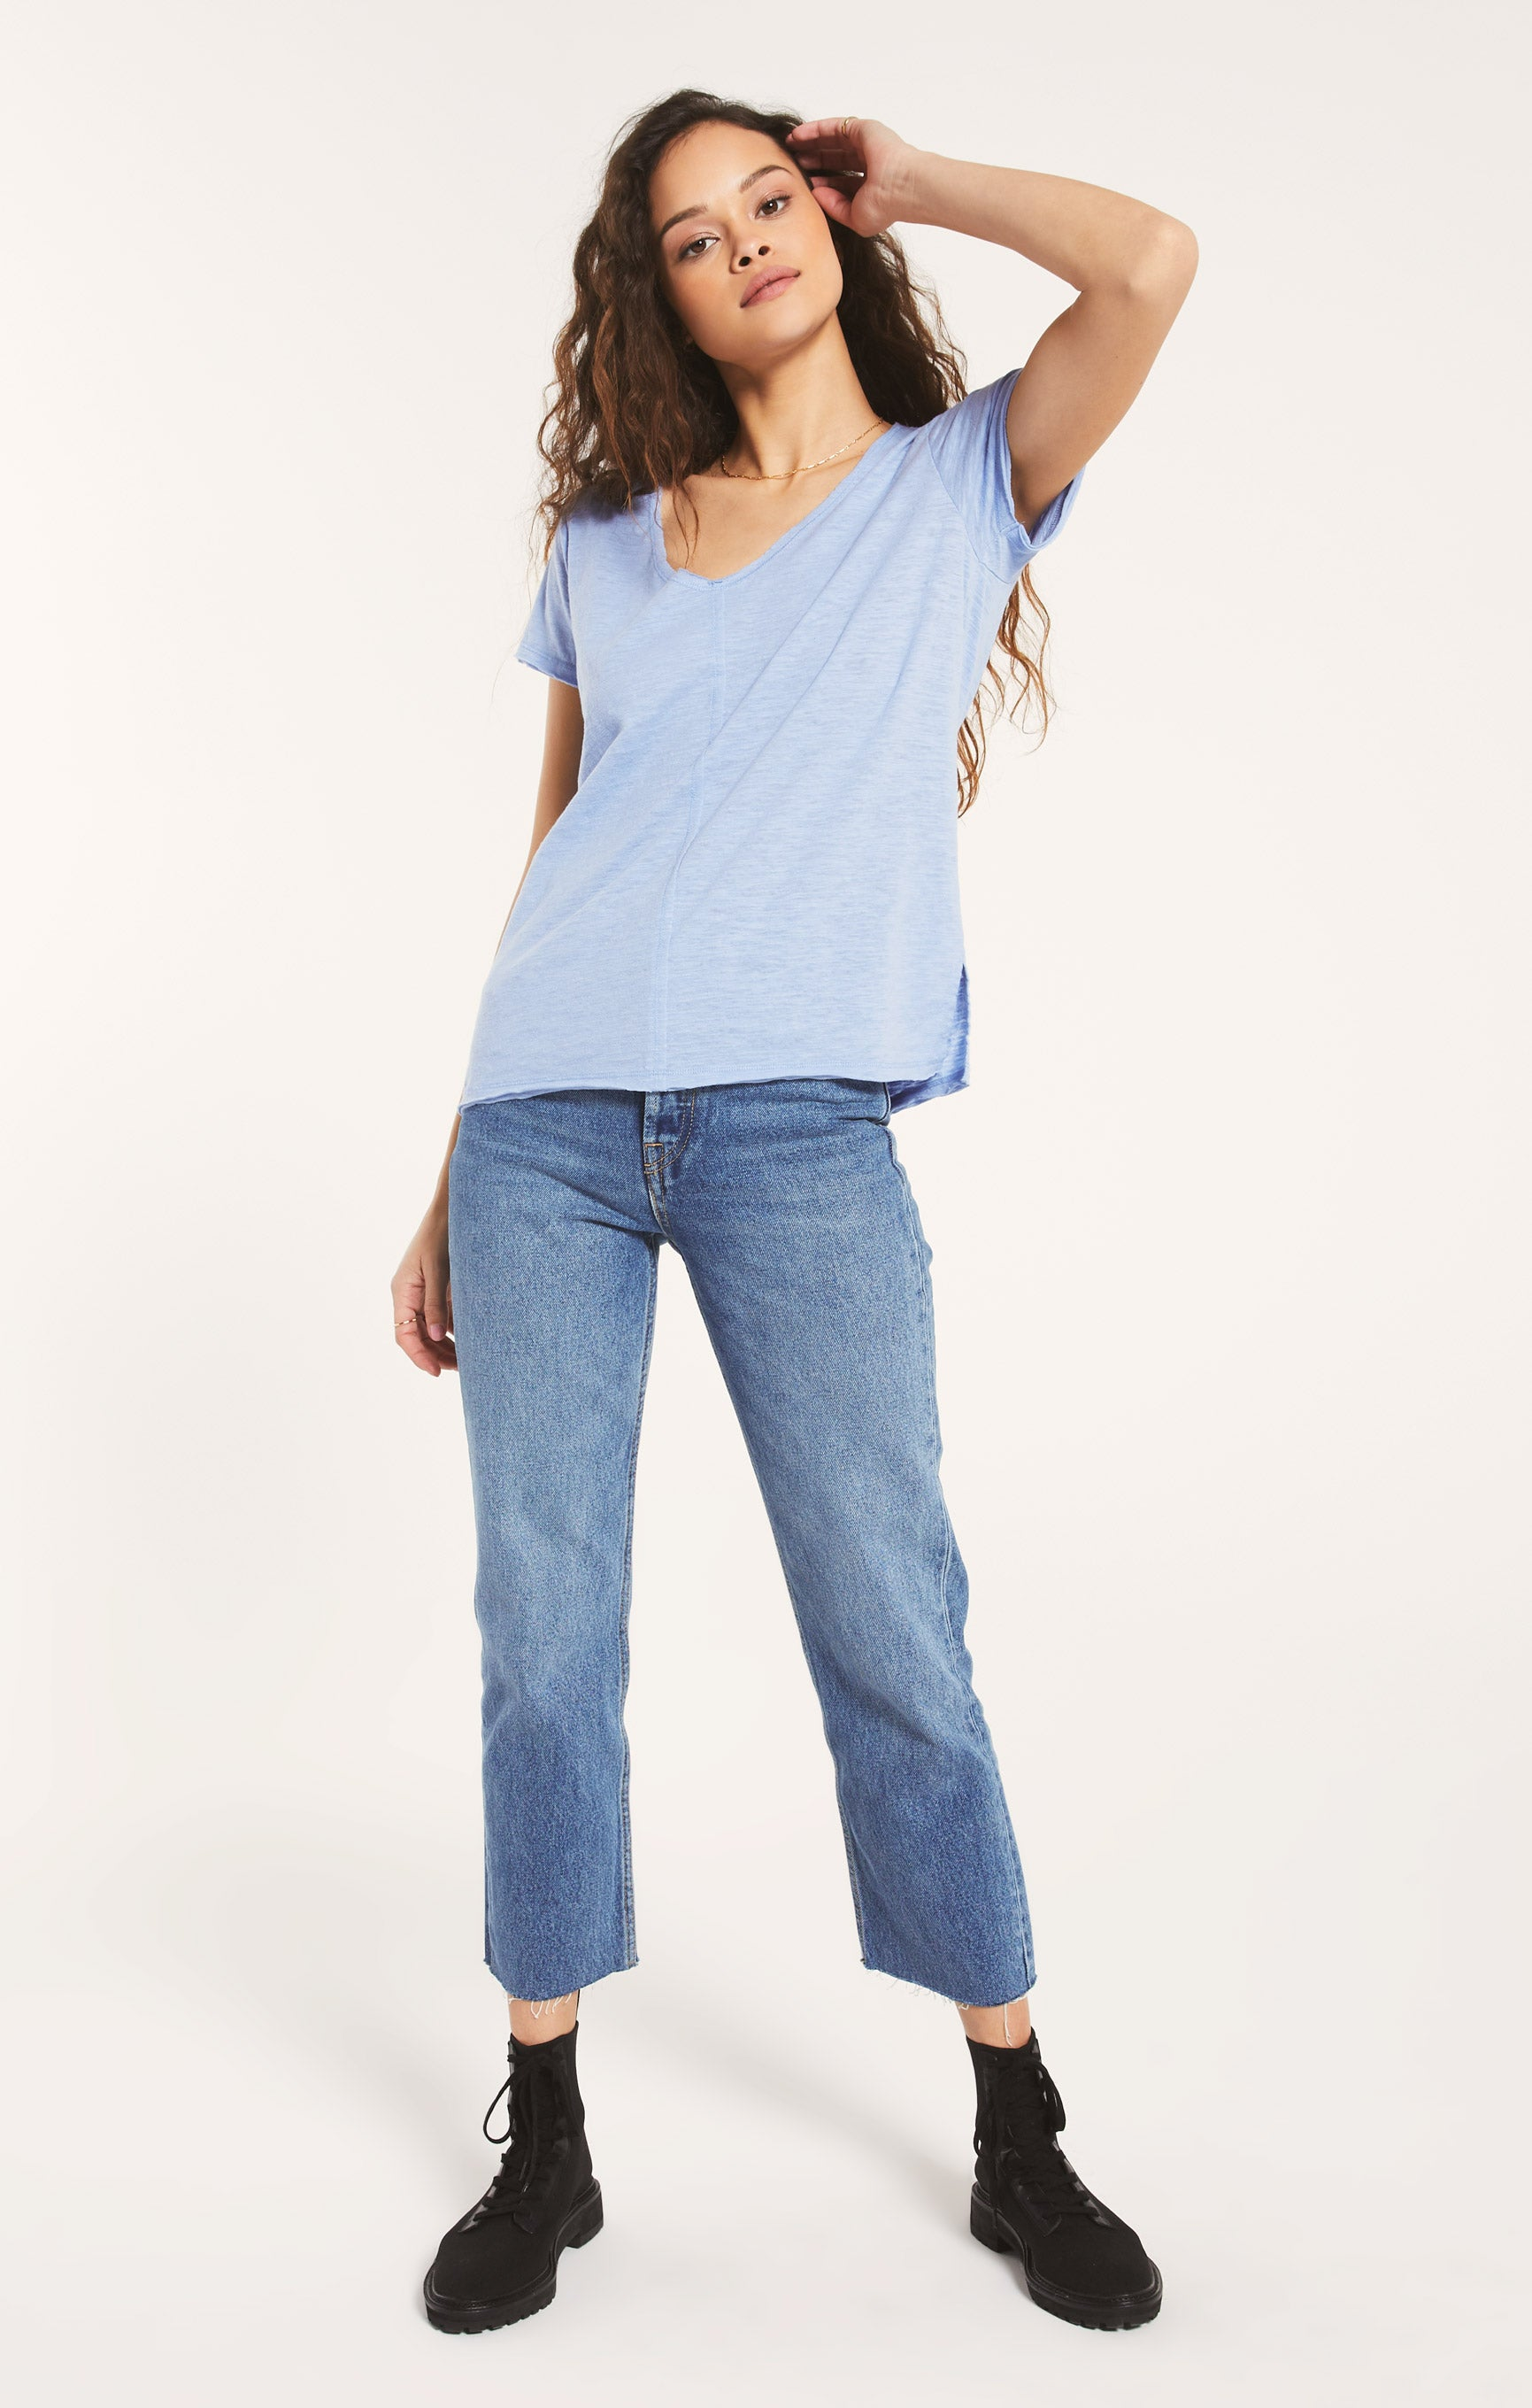 Tops Airy Slub Chaparral Tee Forever Blue